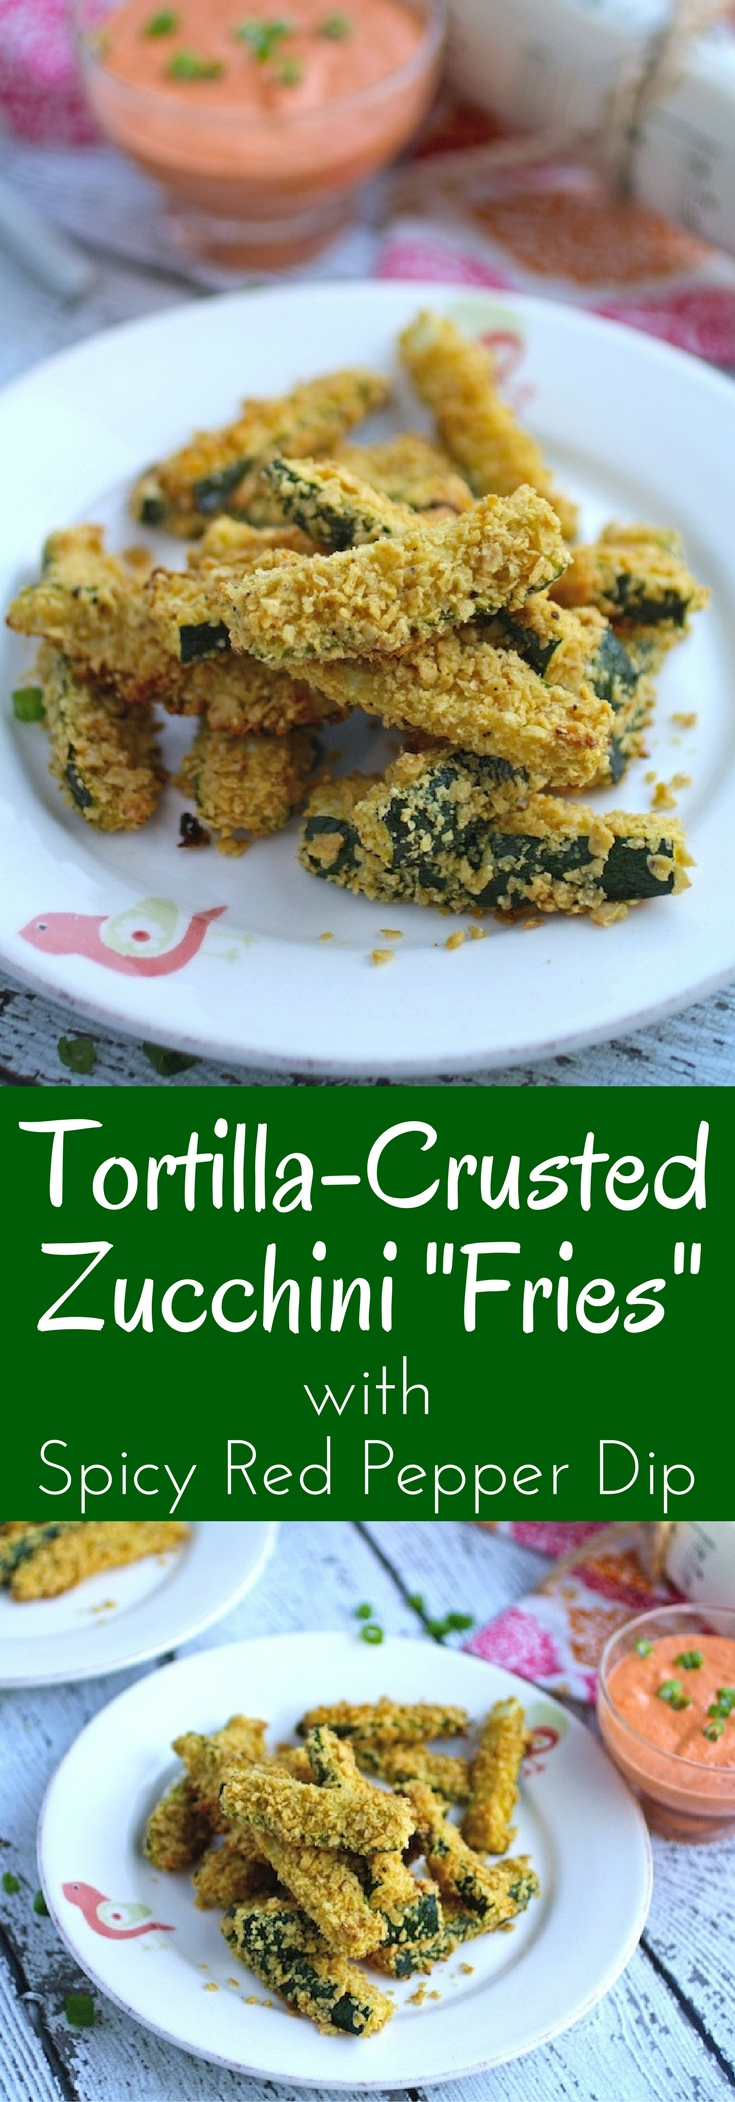 "Tortilla-Crusted Zucchini ""Fries"" with Spicy Red Pepper Dip are a great snack! You'll love this gluten-free treat!"